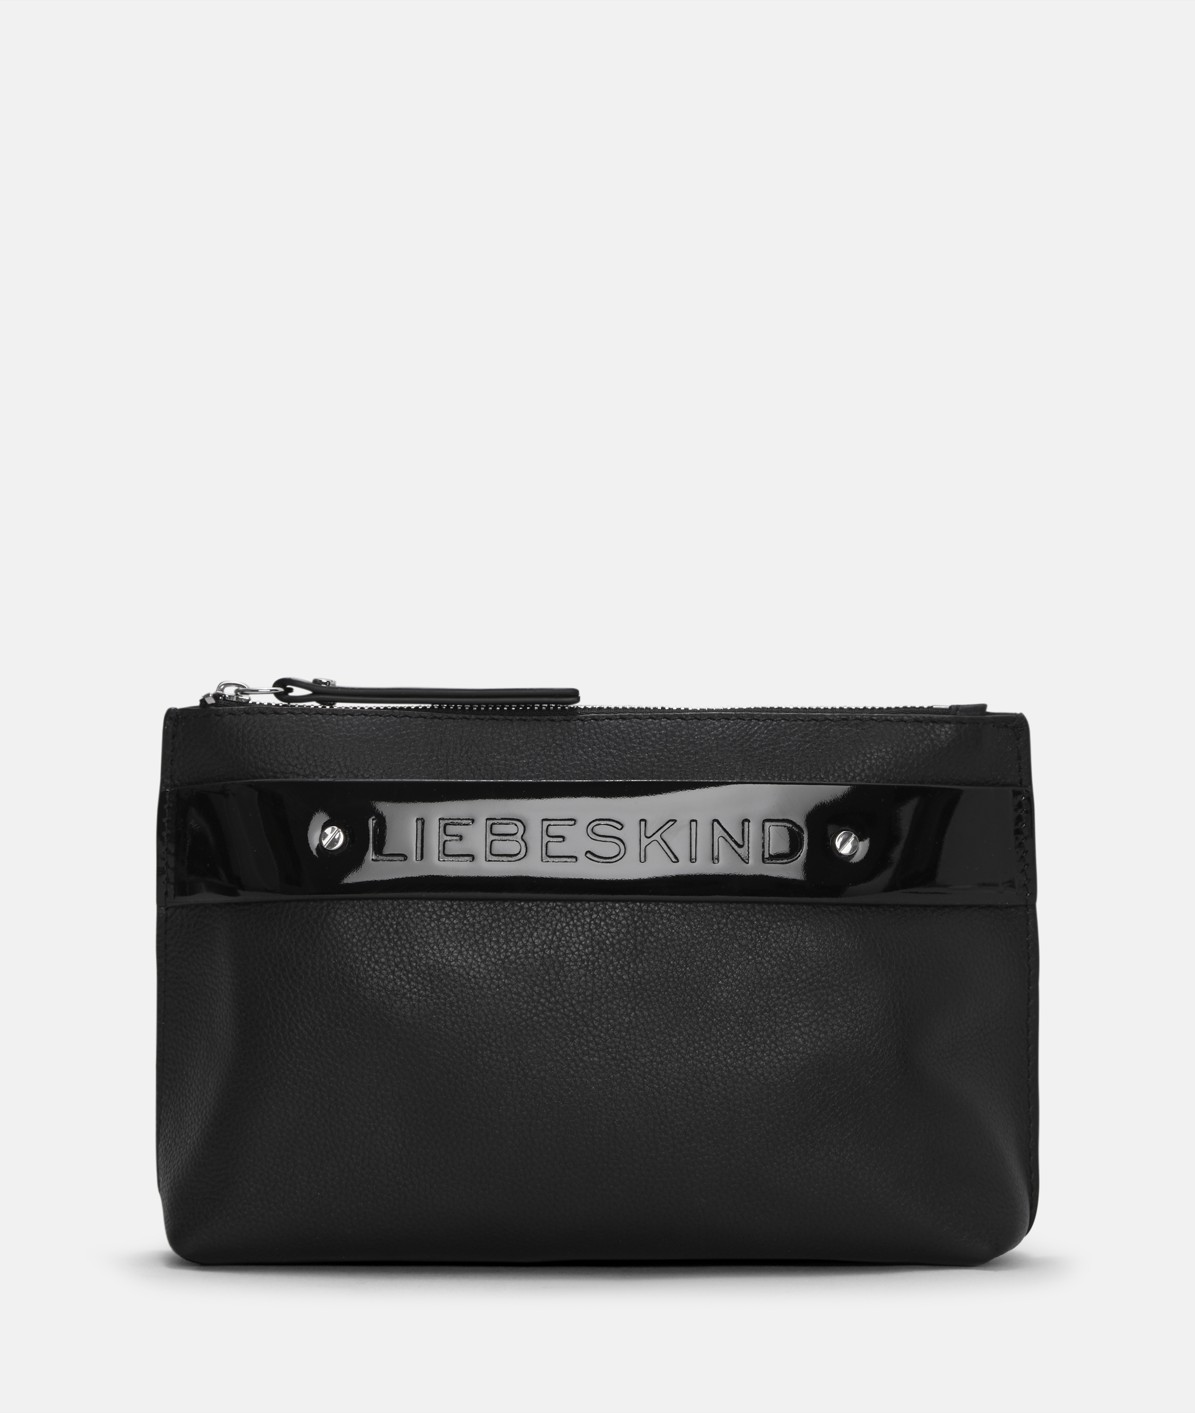 Make-up bag with a contrasting patent leather strap from liebeskind